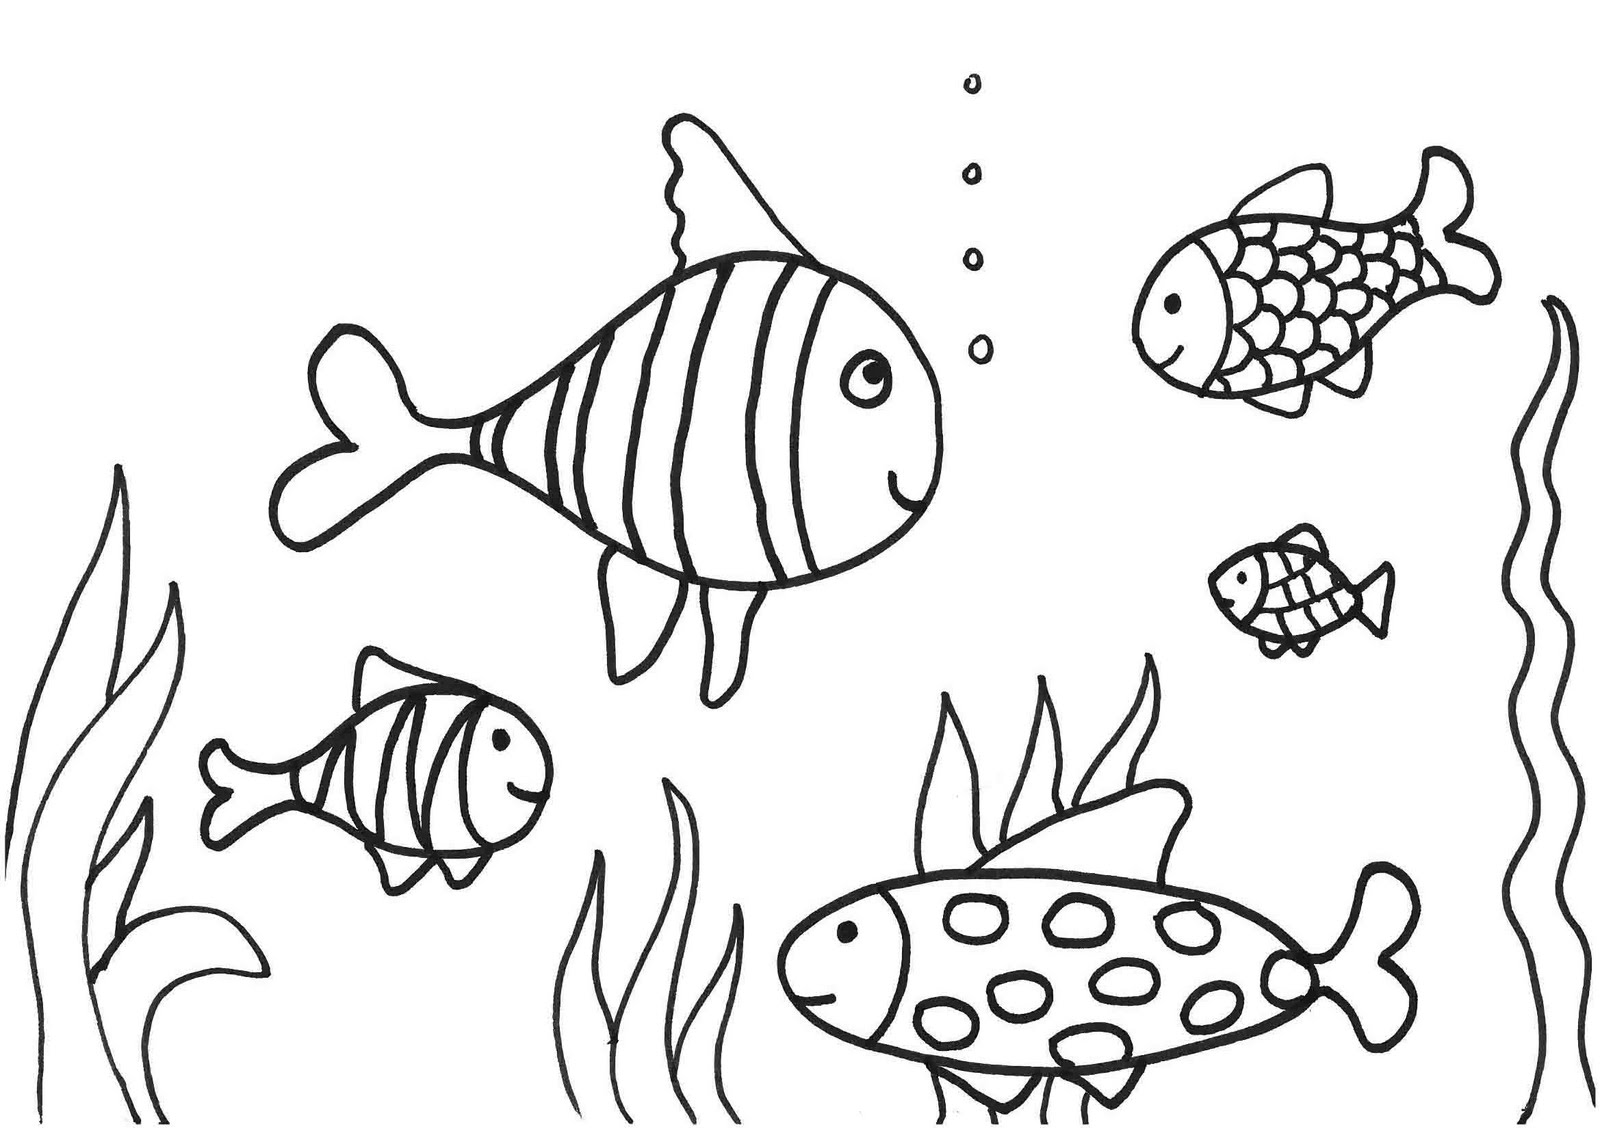 large fish coloring page simple fish drawing clipartsco simple fish coloring fish large coloring page